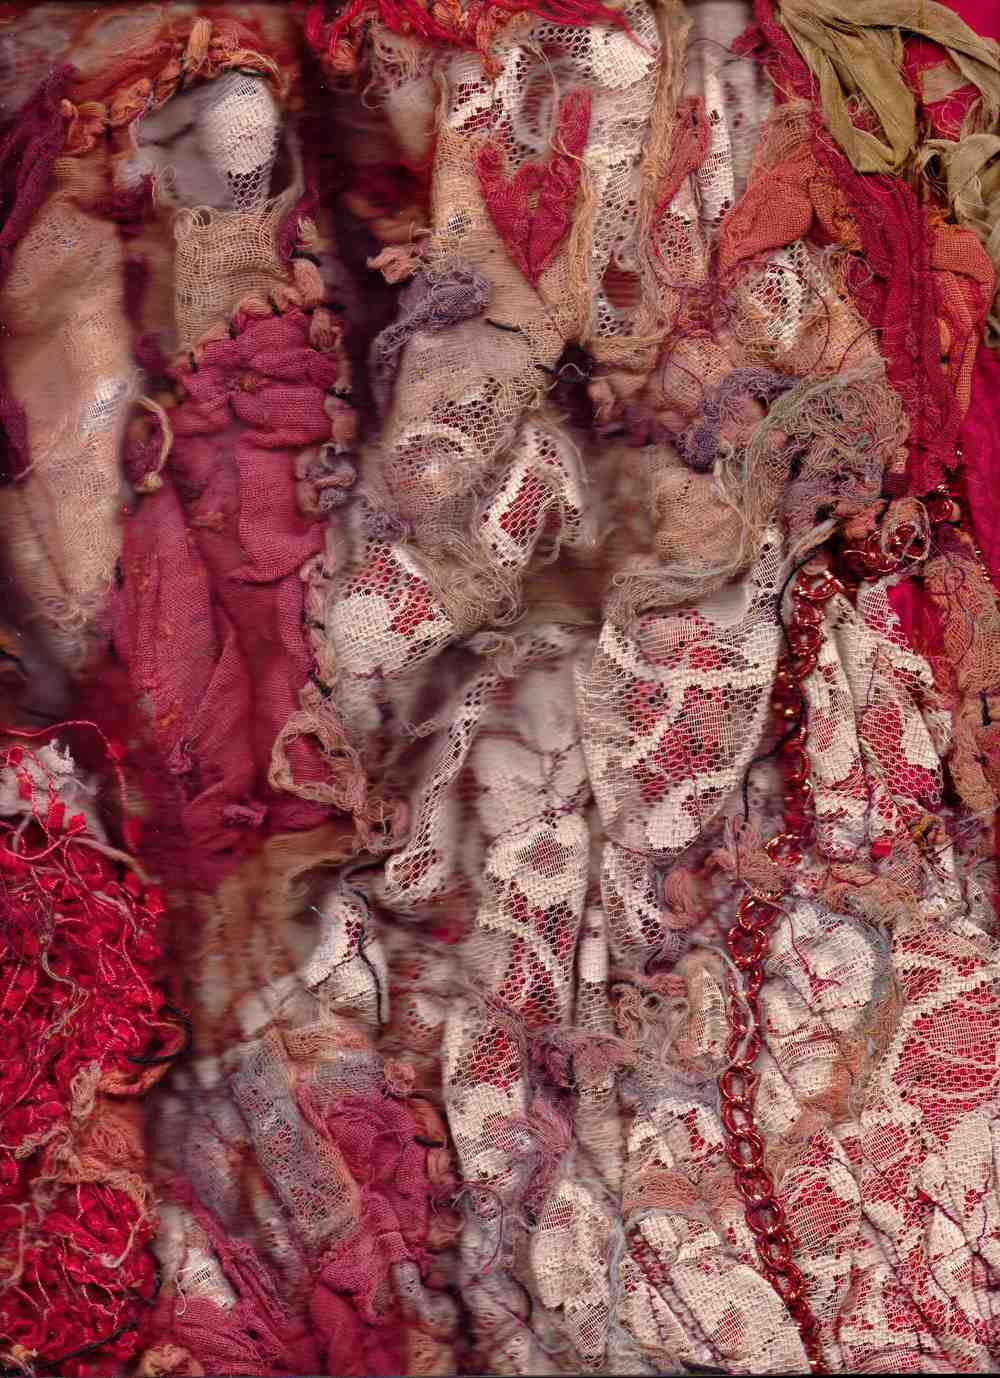 'Red Rose' dress close up, formed of torn antique lace found in a meadow in Somerset.